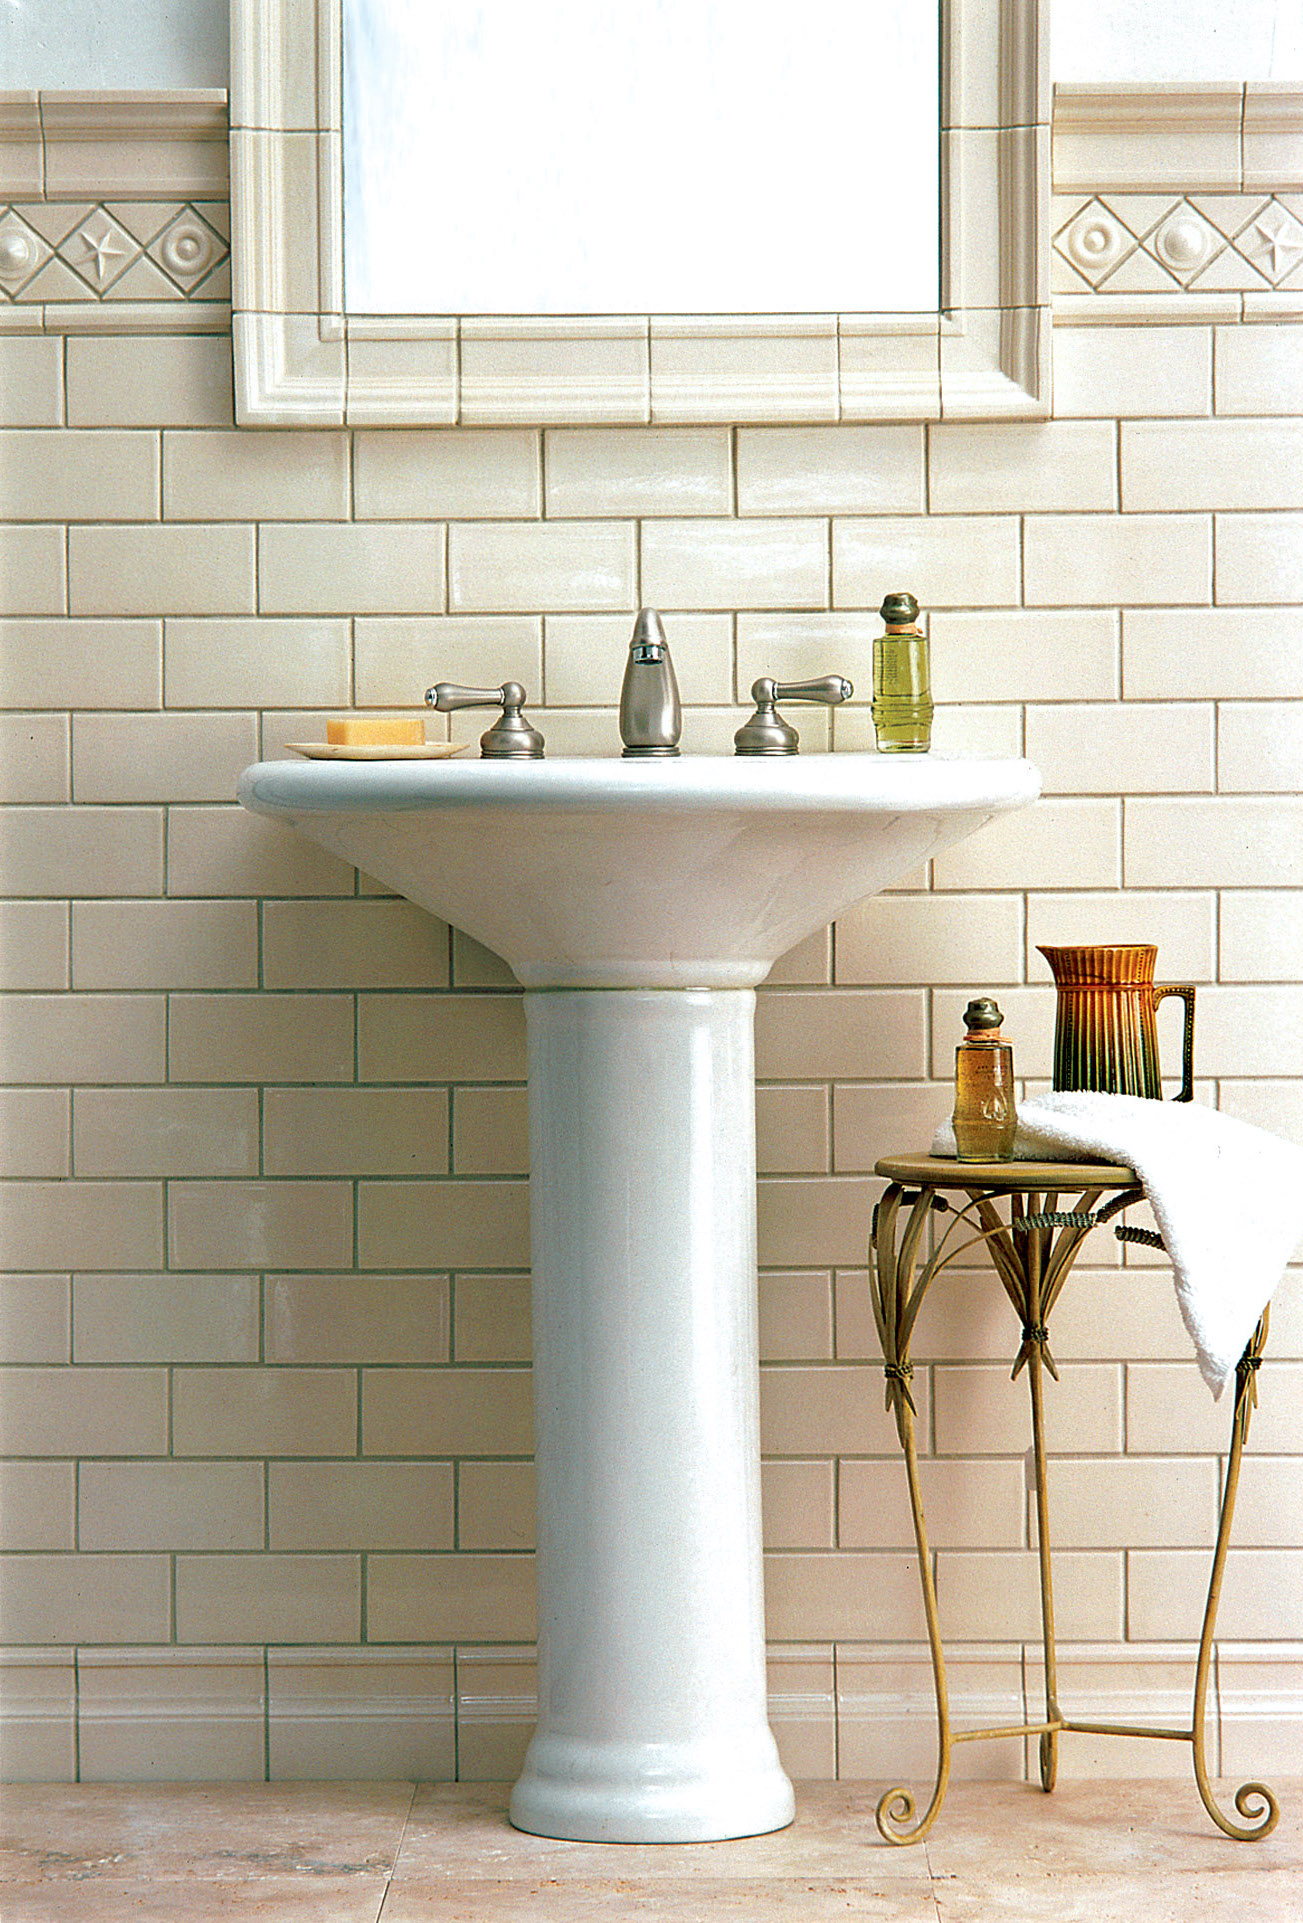 Pratt & Larson's 'Classic Cream' subway tile